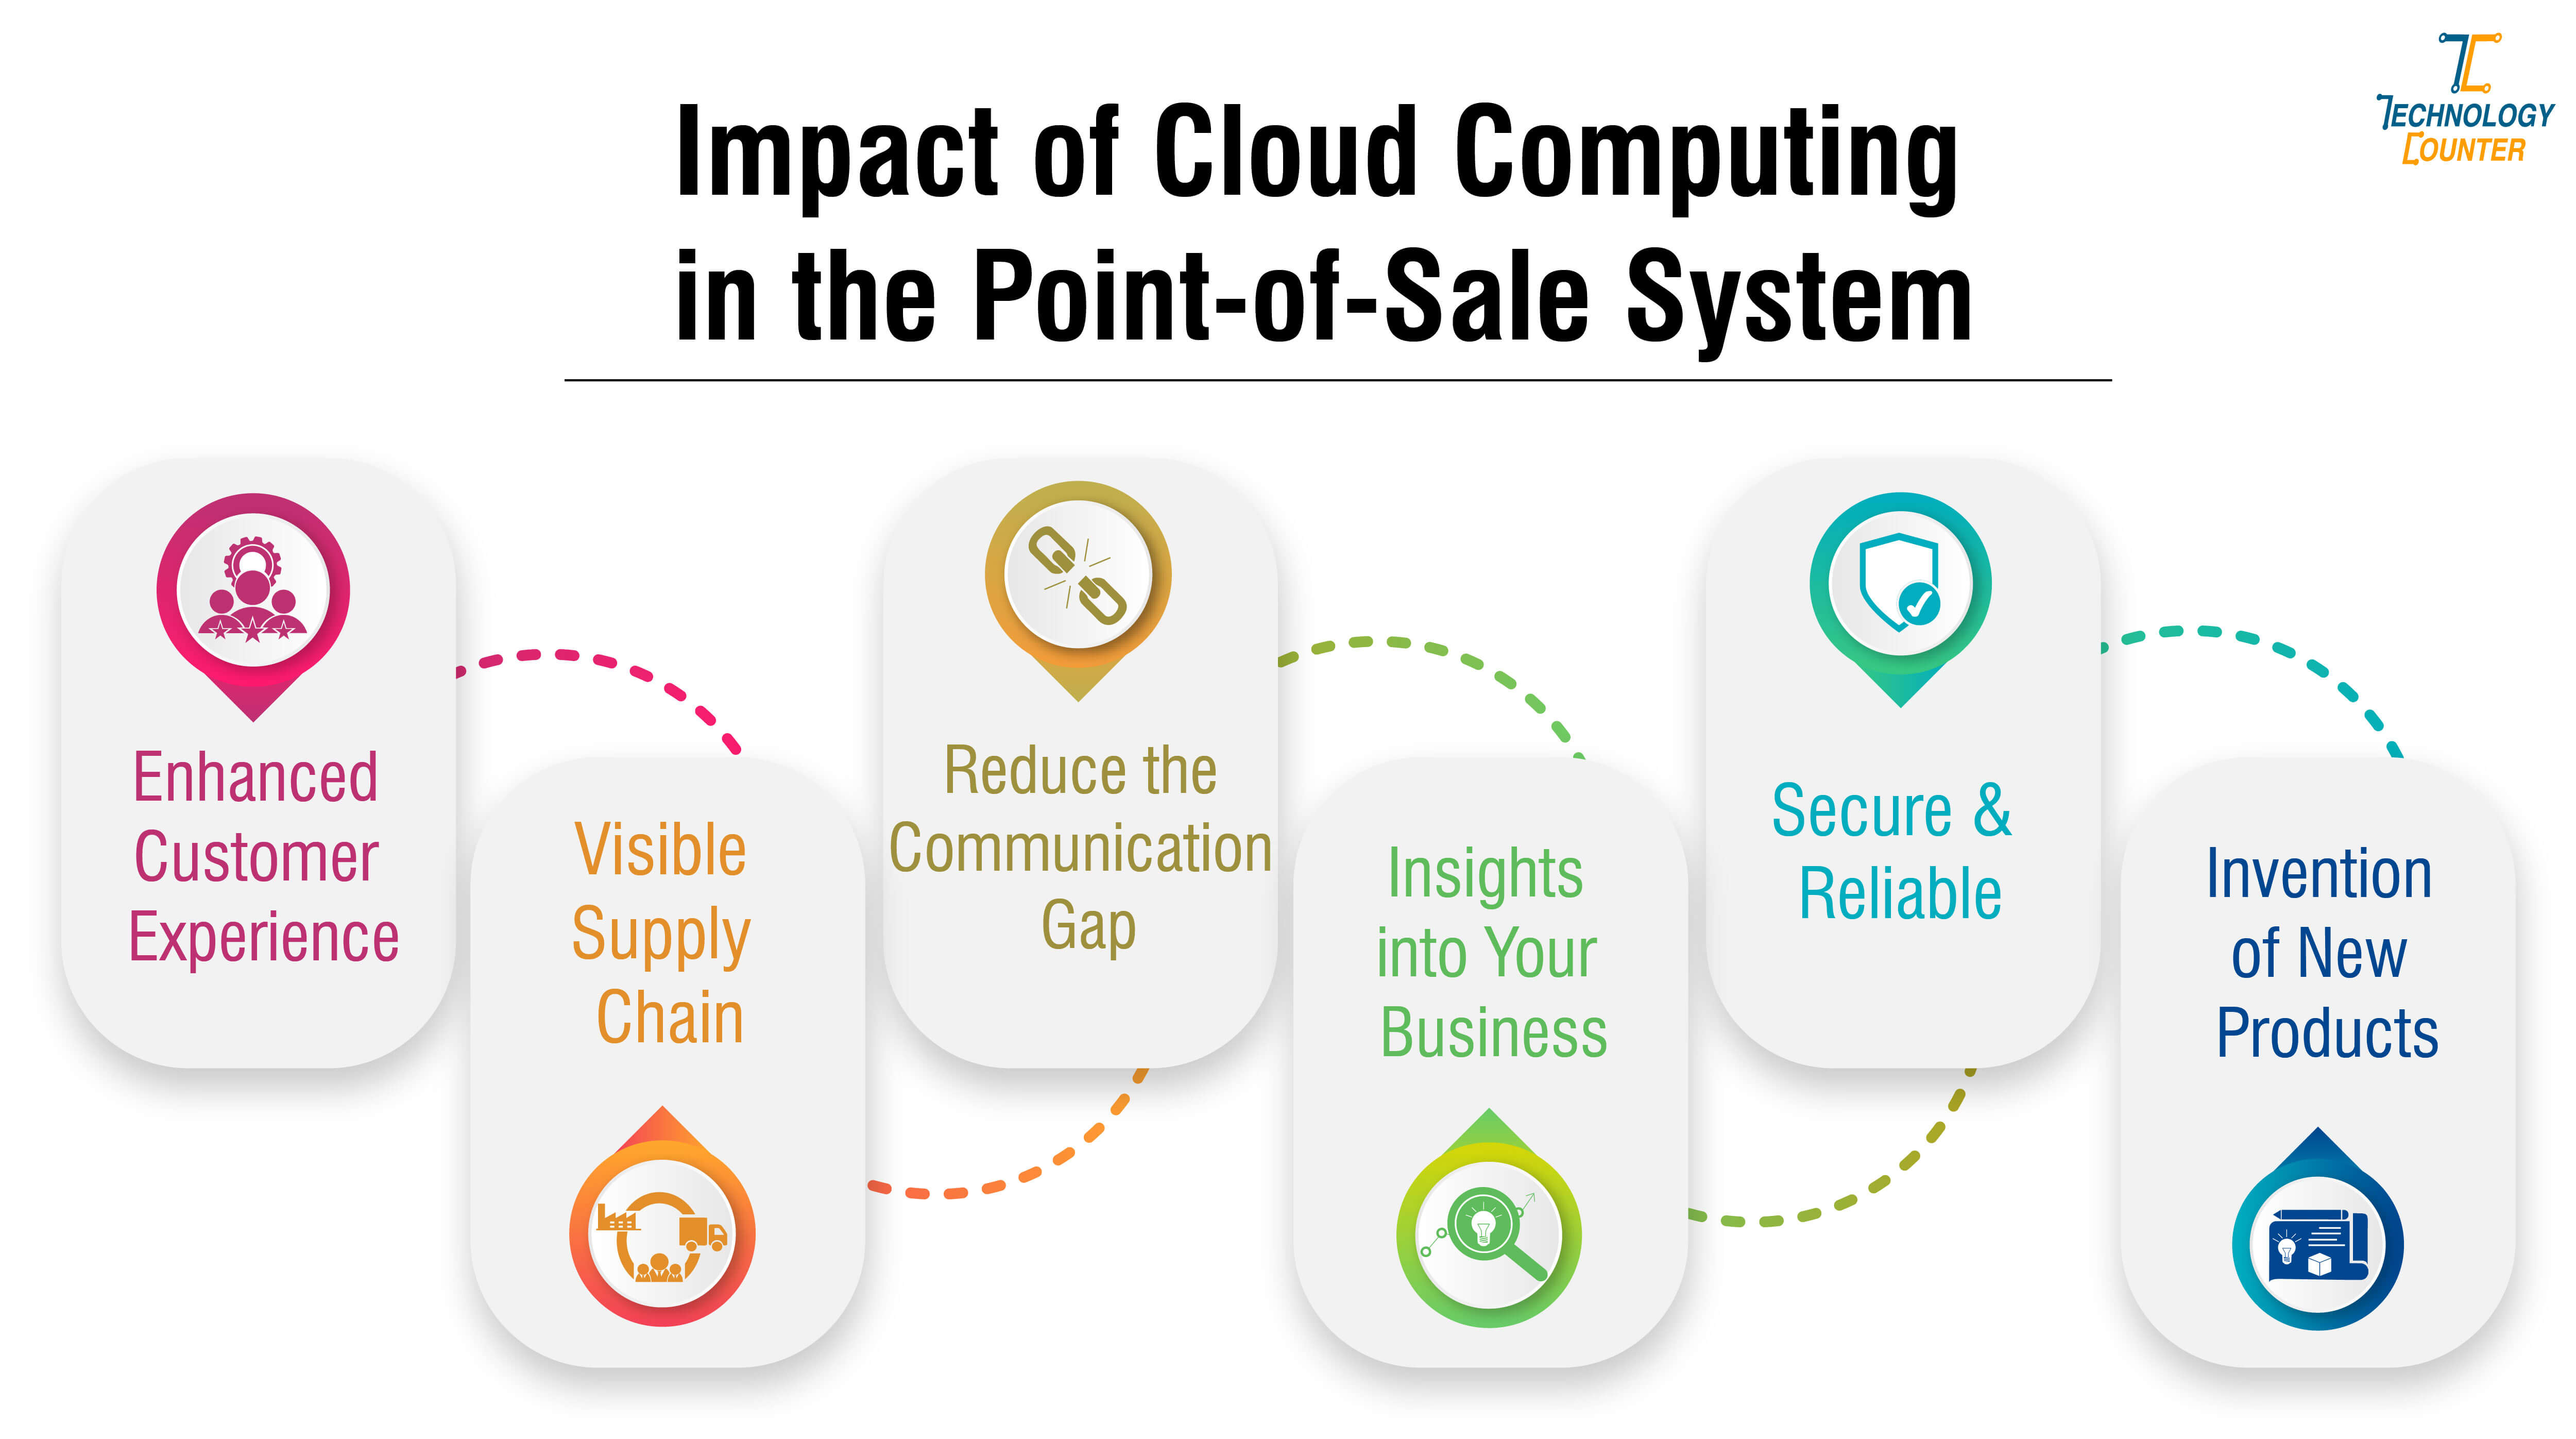 Impact of Cloud Computing in the Point-of-Sale System